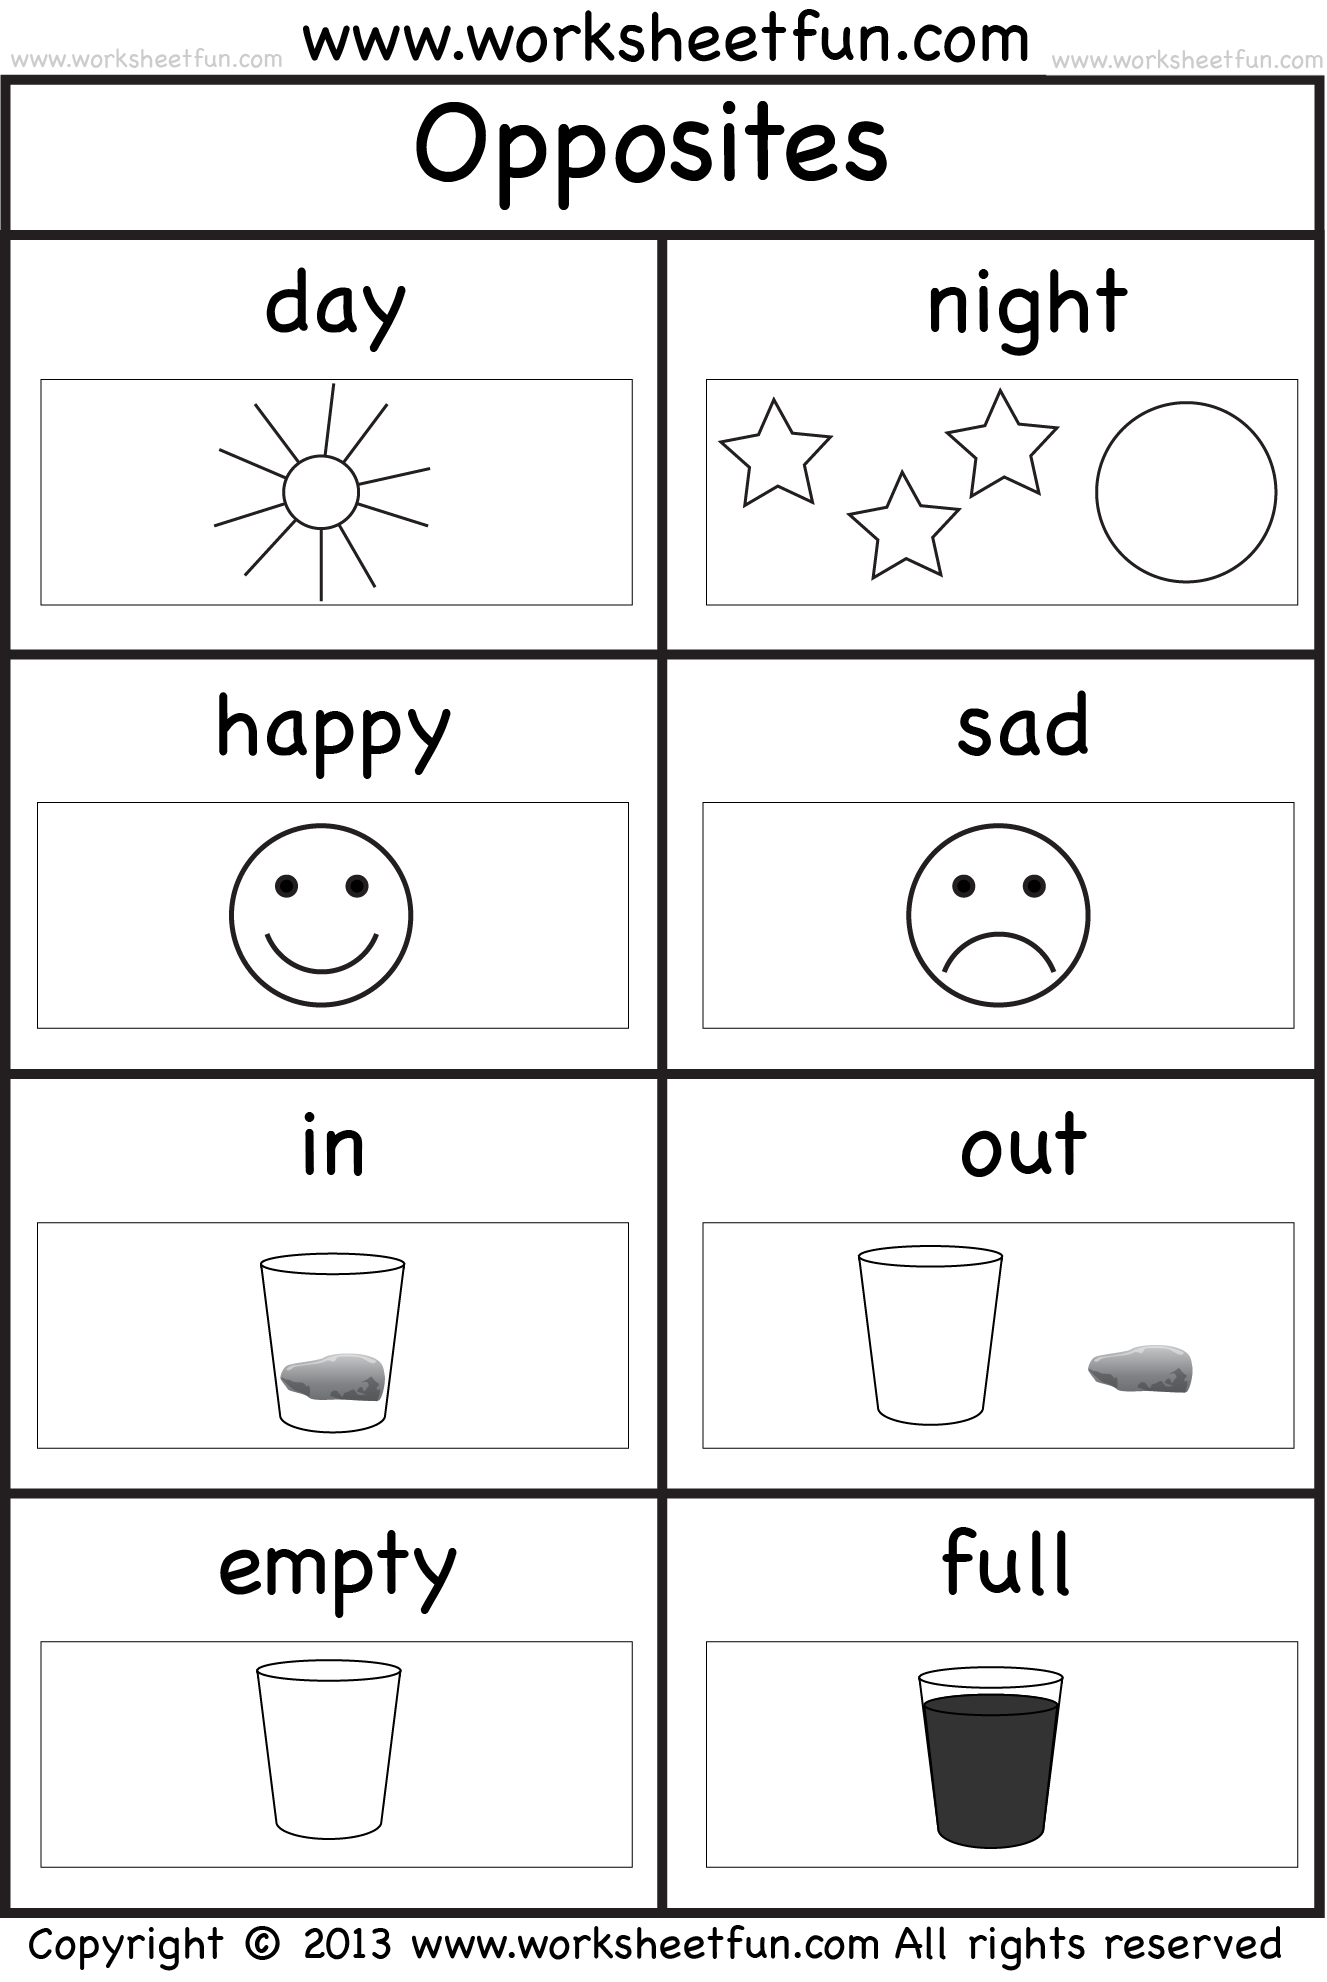 Worksheets Worksheet Fun httpwww worksheetfun comwp contentuploads201310 contentuploads201310opposites pictures wfun 1 png